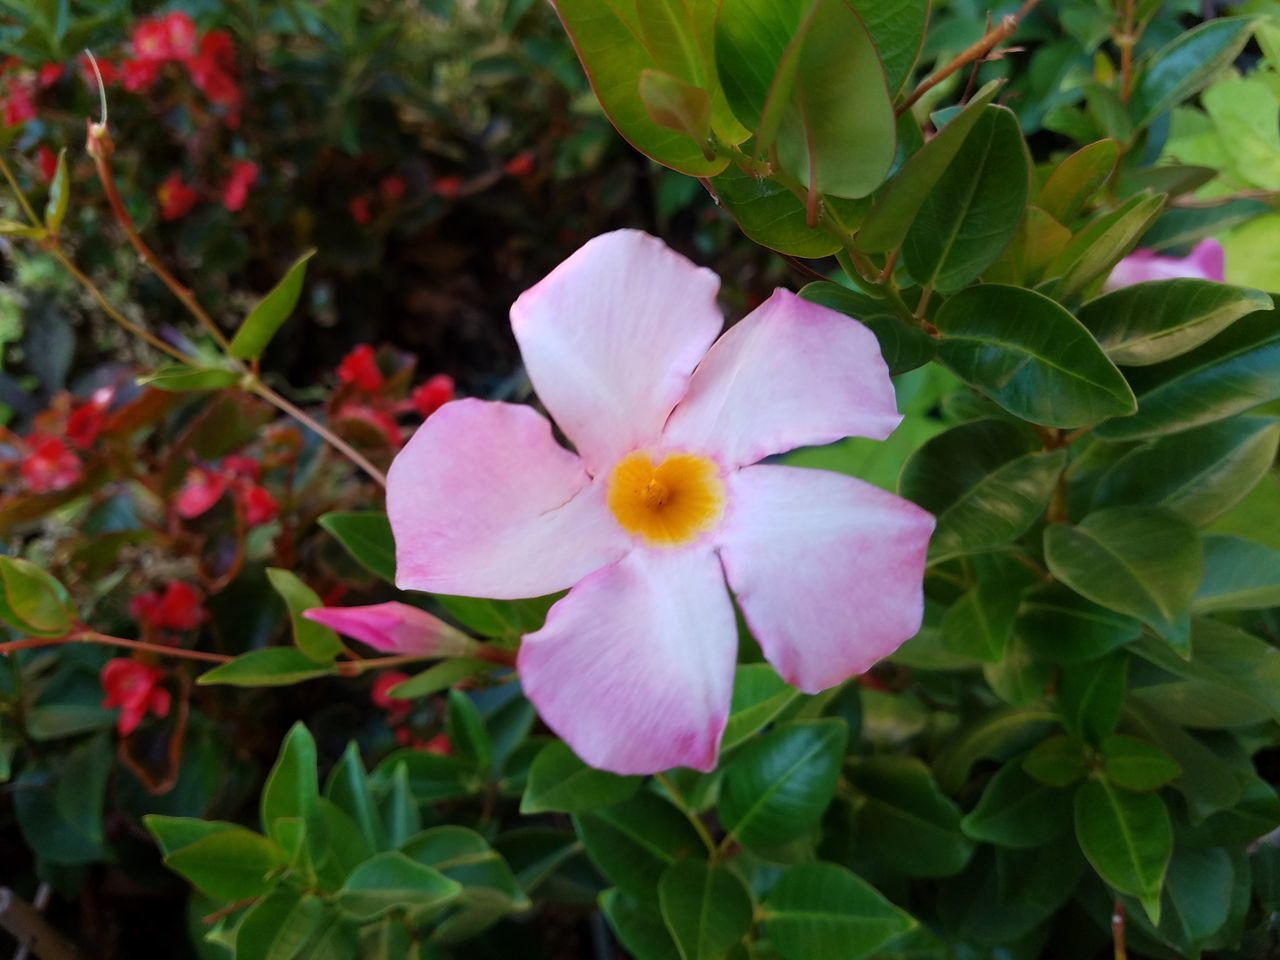 petal, flower, fragility, beauty in nature, growth, flower head, nature, blooming, freshness, leaf, plant, day, green color, no people, close-up, outdoors, periwinkle